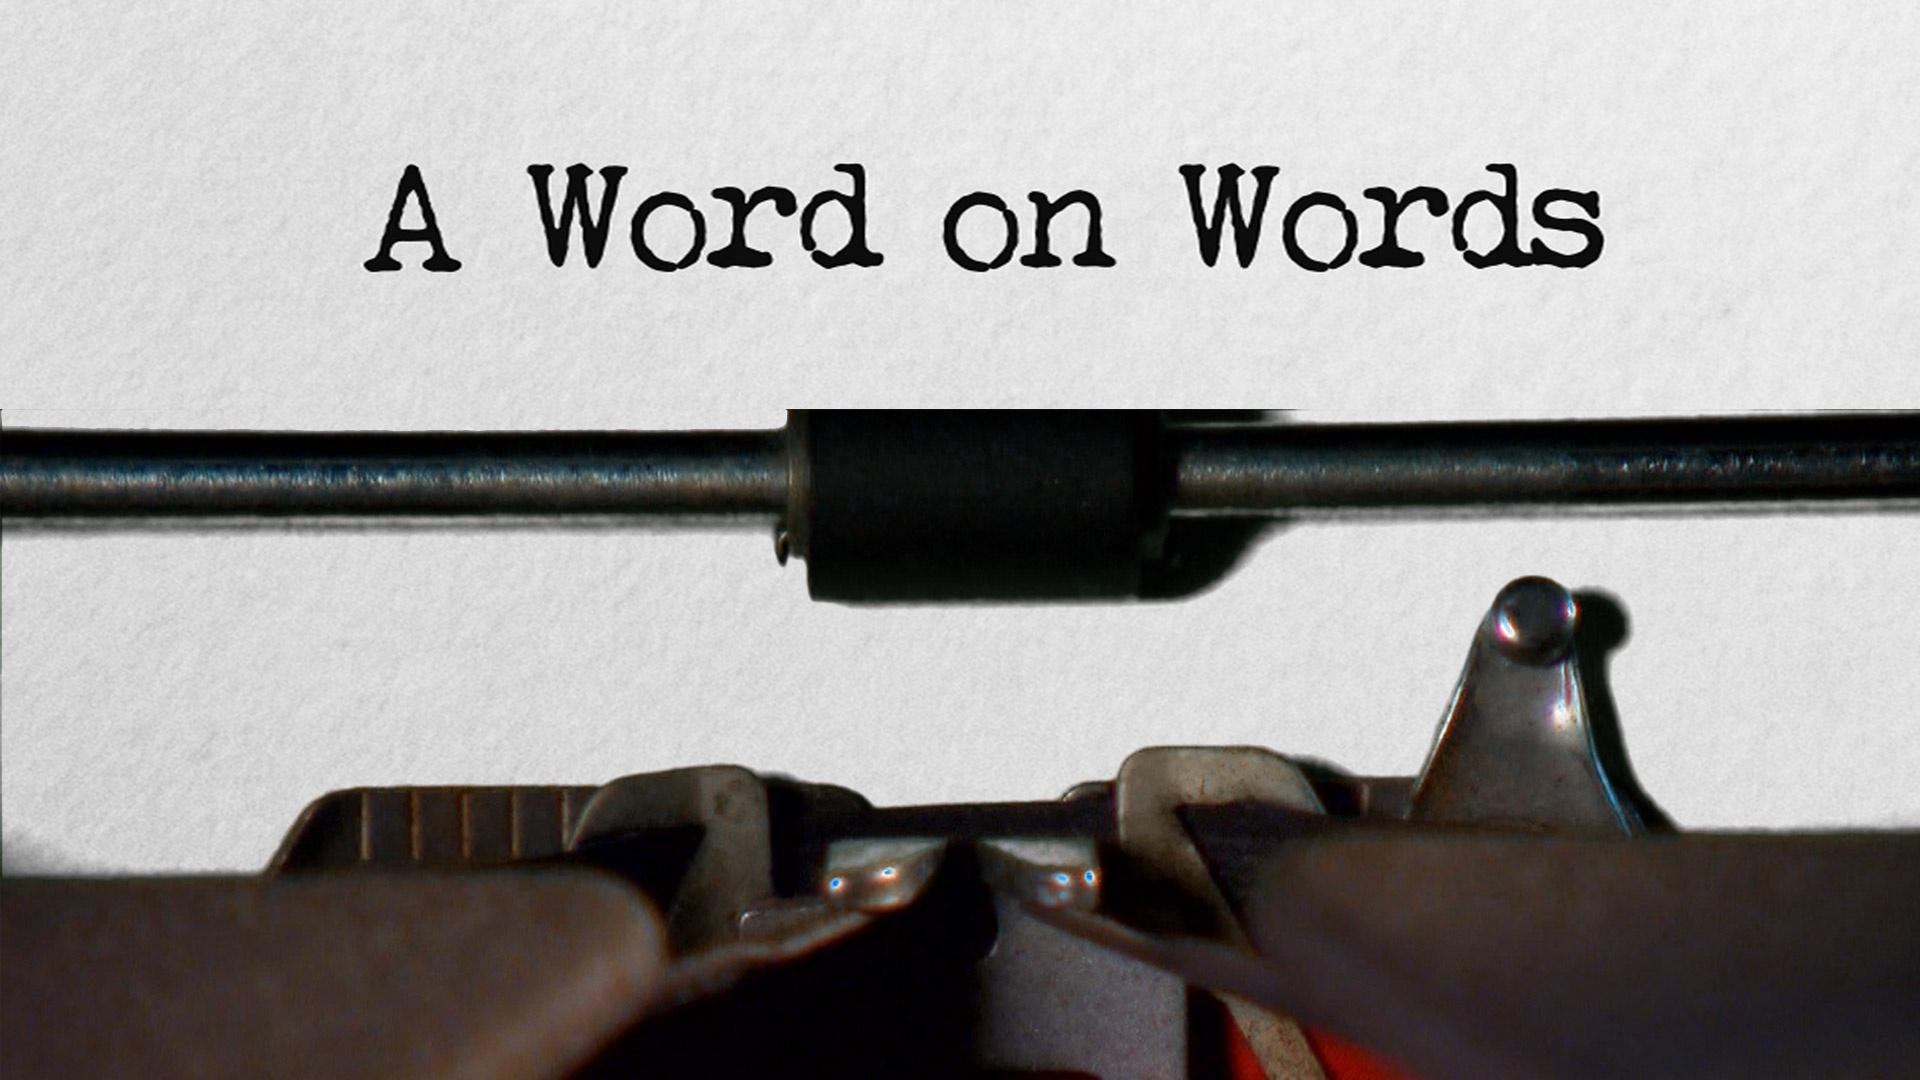 A Word on Words